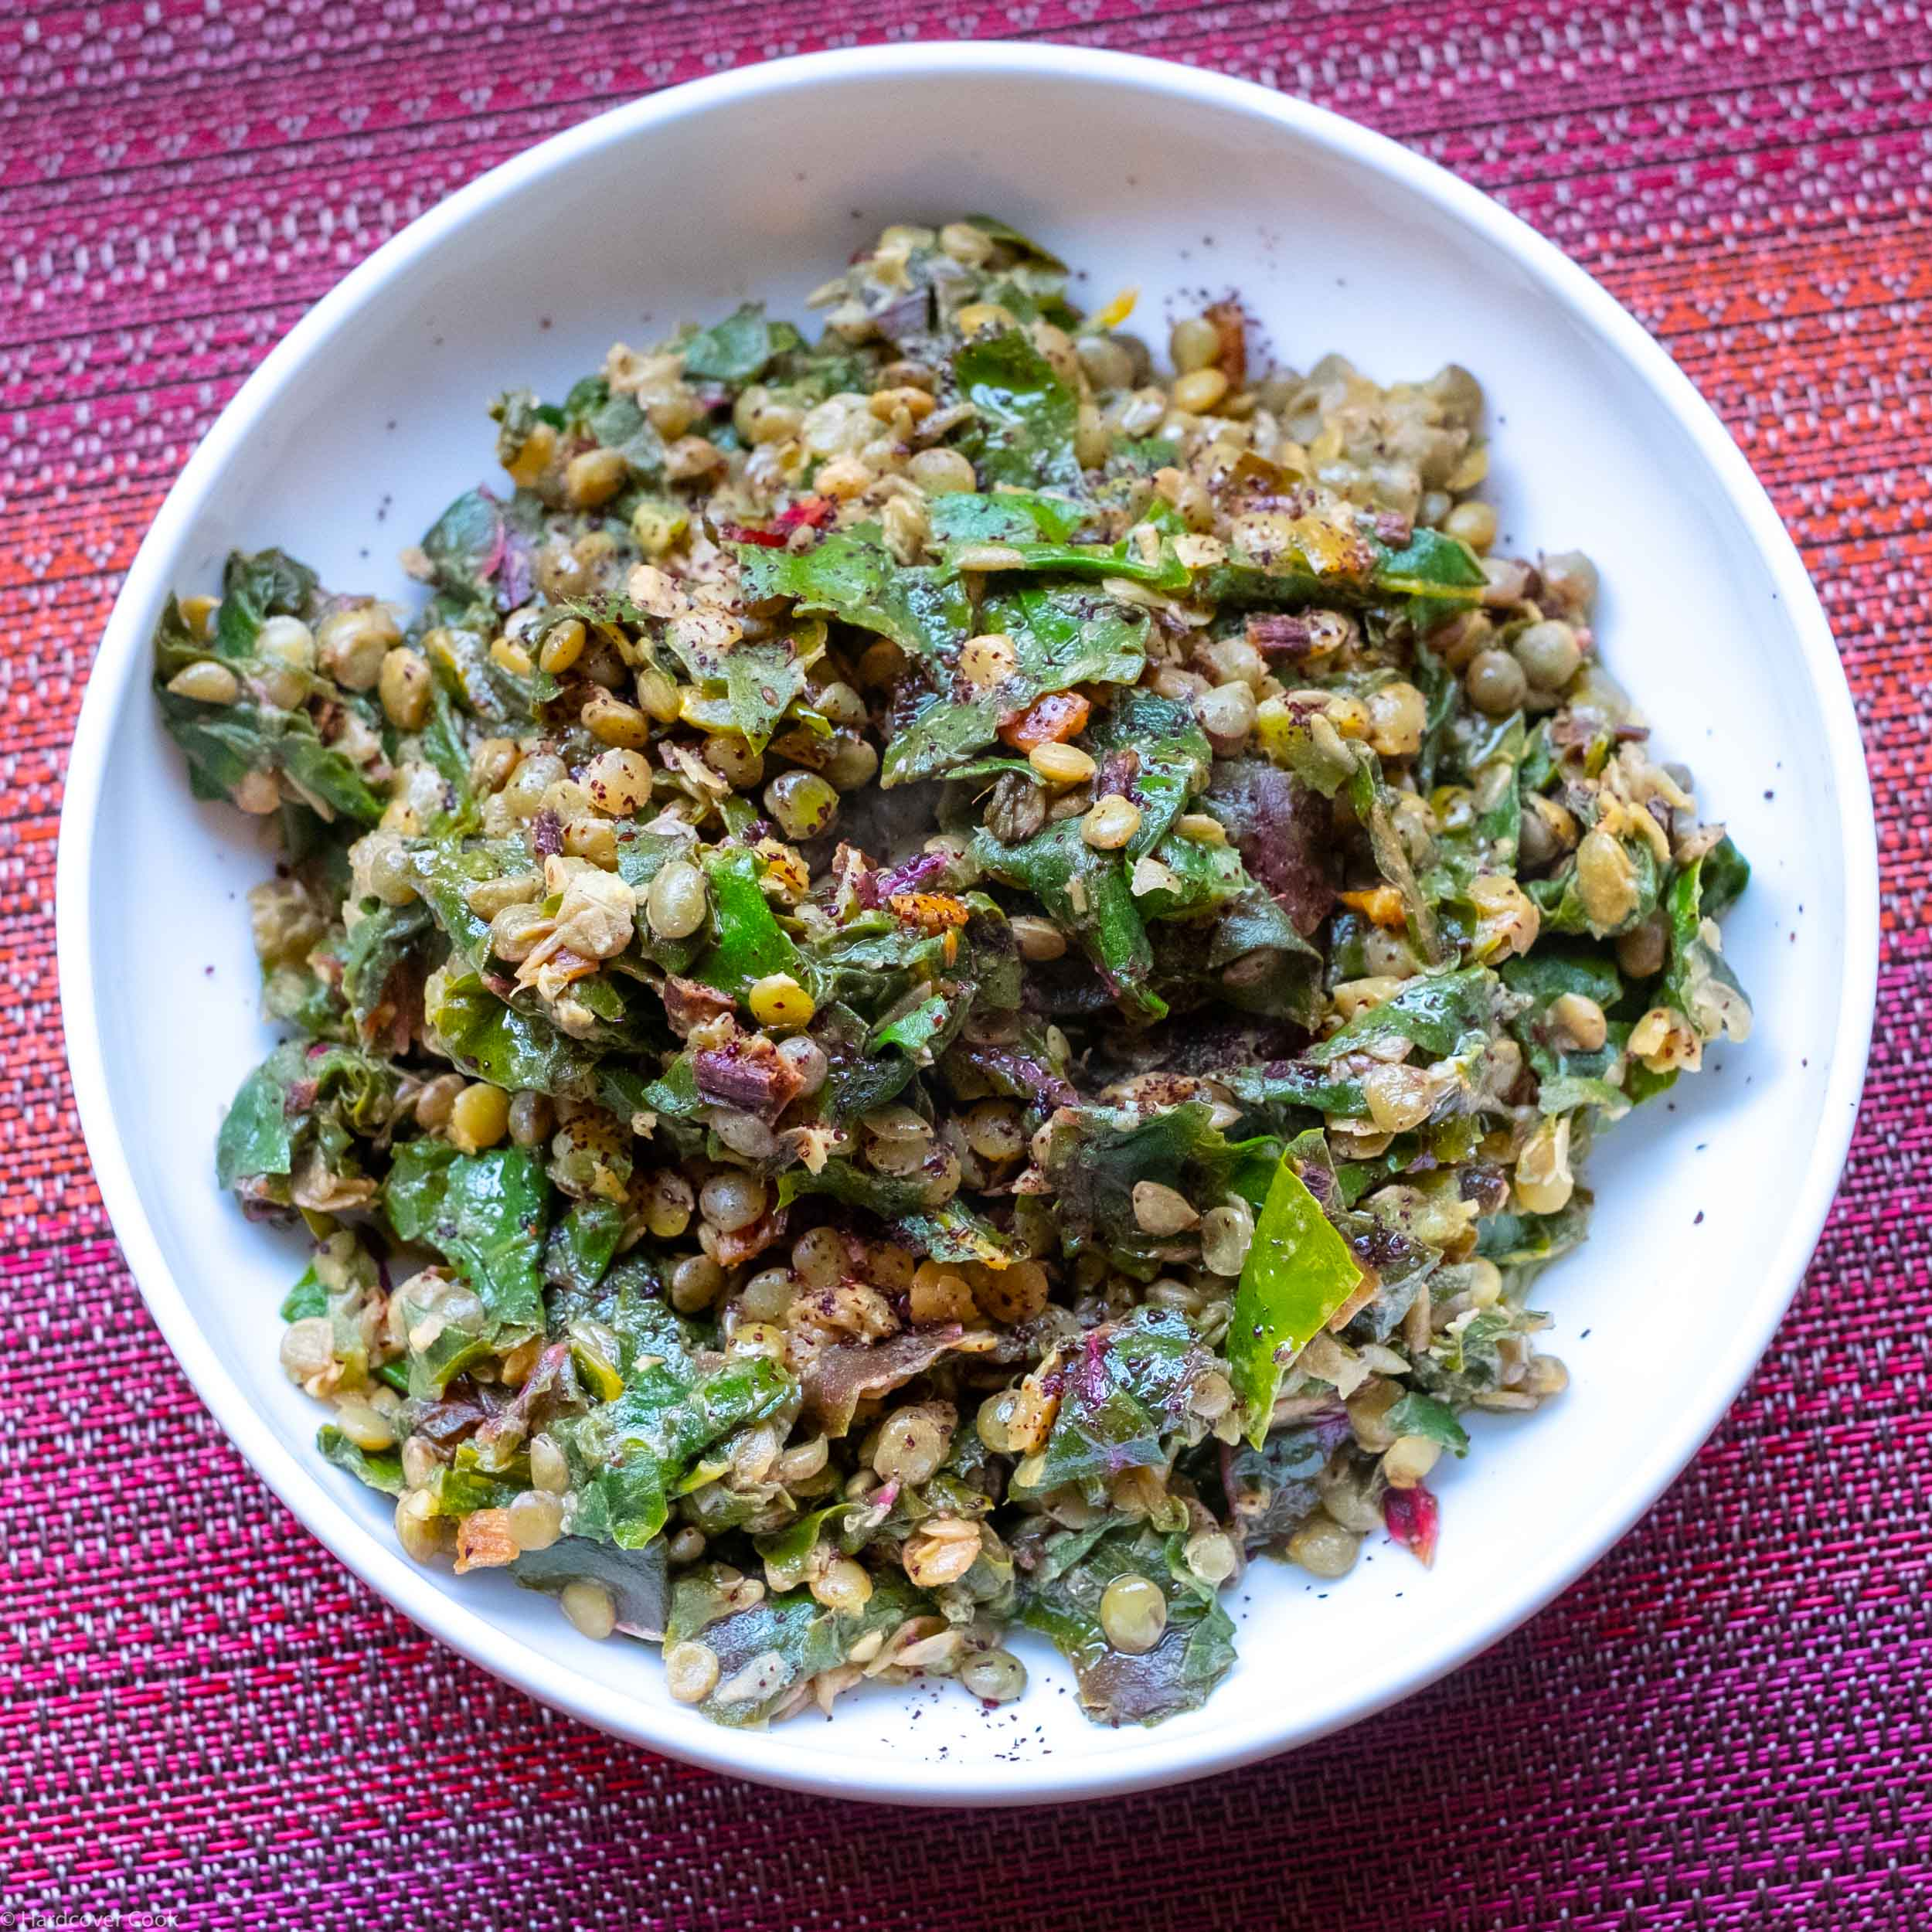 gazan-lentils-with-swiss-chard-from-zaitoun.jpg